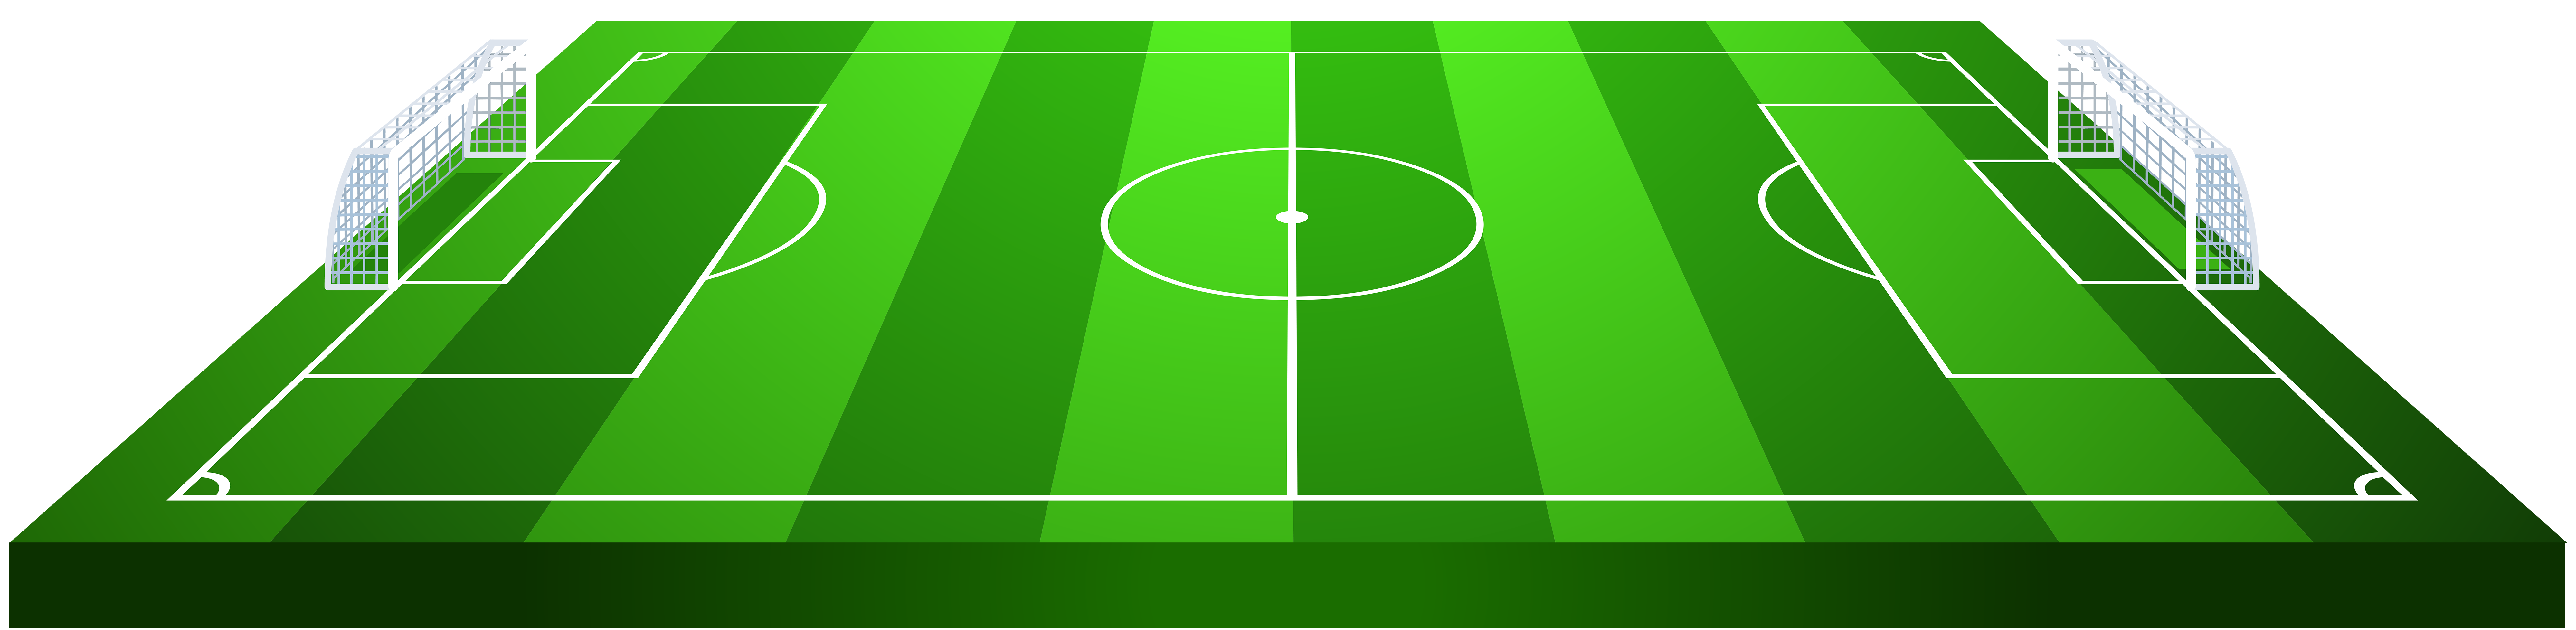 Soccer Field Png Transparent Clip Art Image Gallery Yopriceville High Quality Images And Transparent Png Free Clipart Art Images Clip Art Free Clip Art